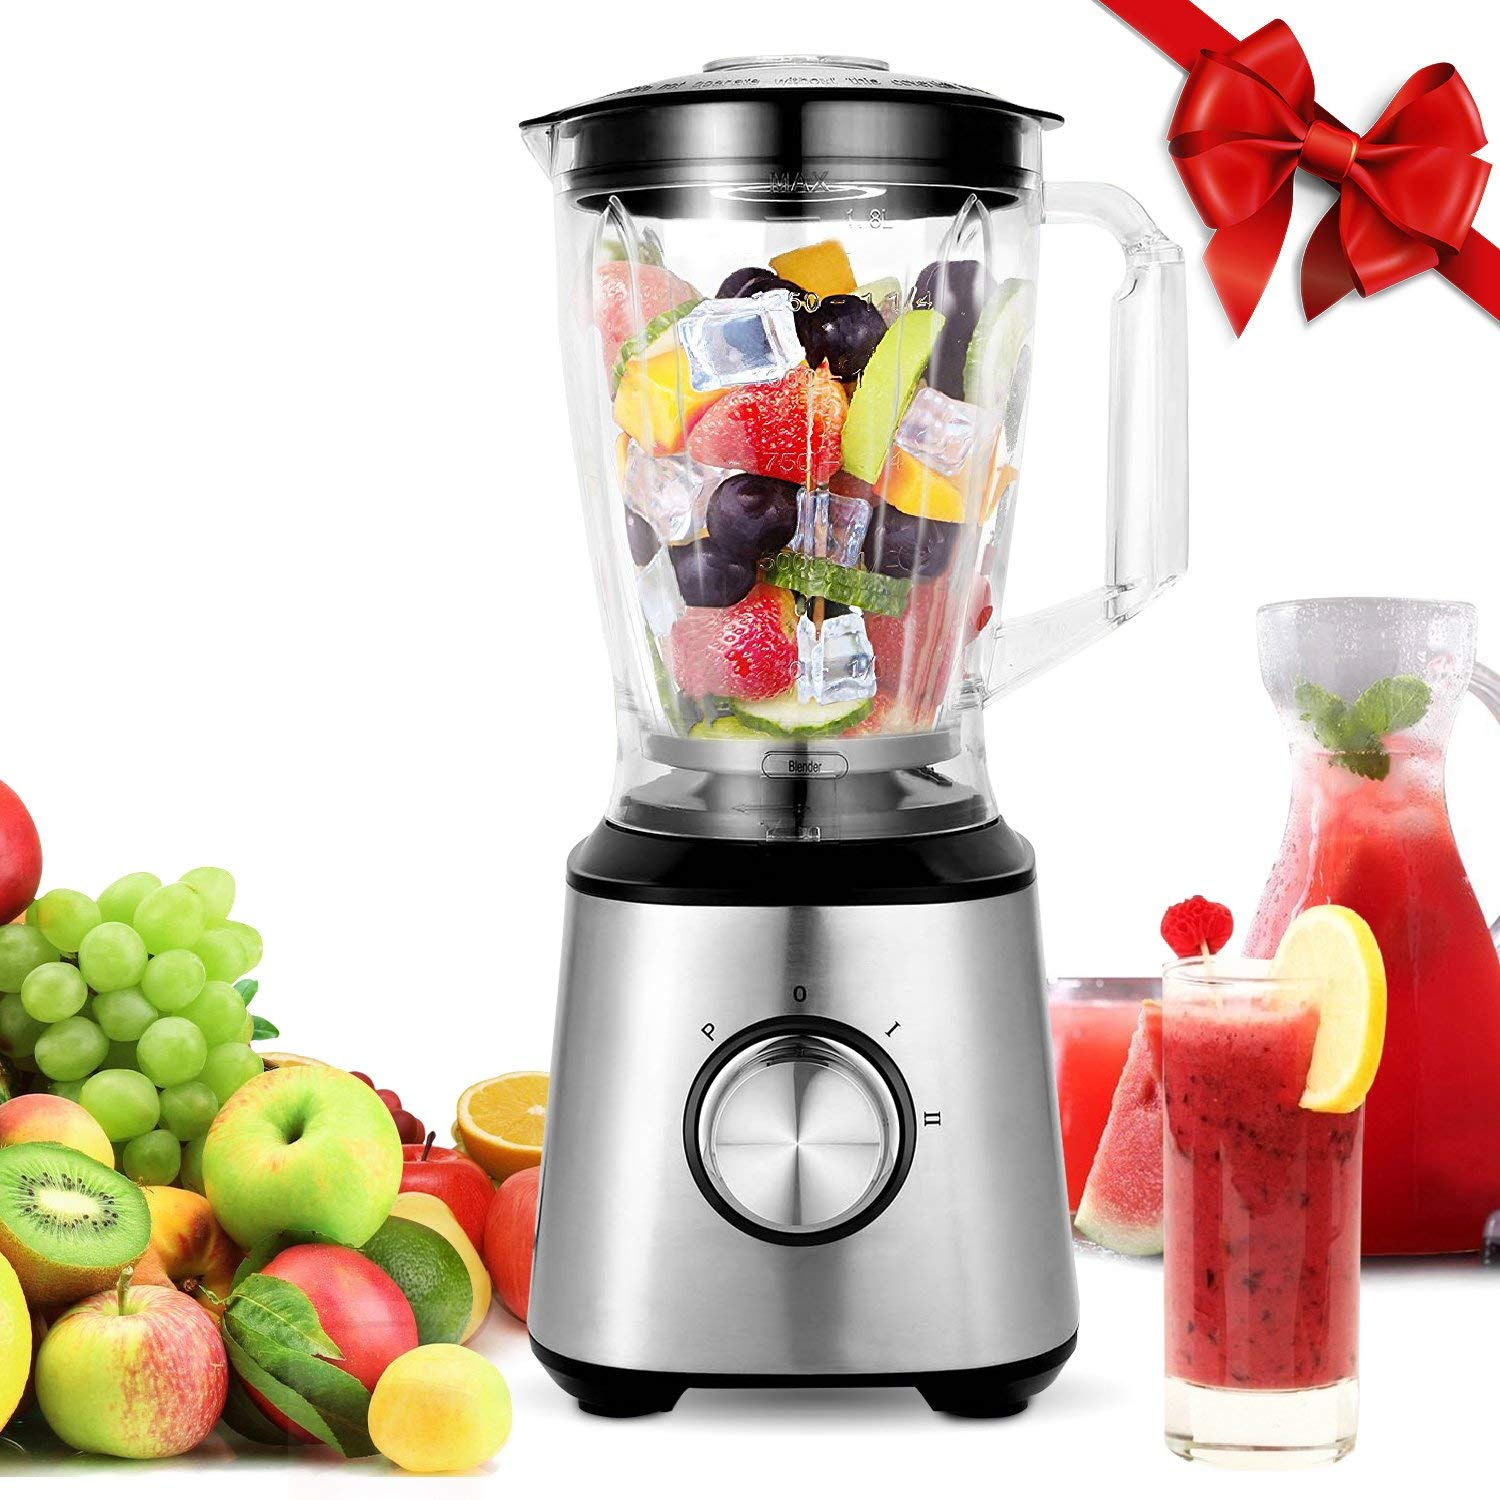 Meykey Smoothie Blenders, Countertop Blender 800W for Shakes and Smoothies  with BPA Free Blender Jar 2-Speed Control,1 5l